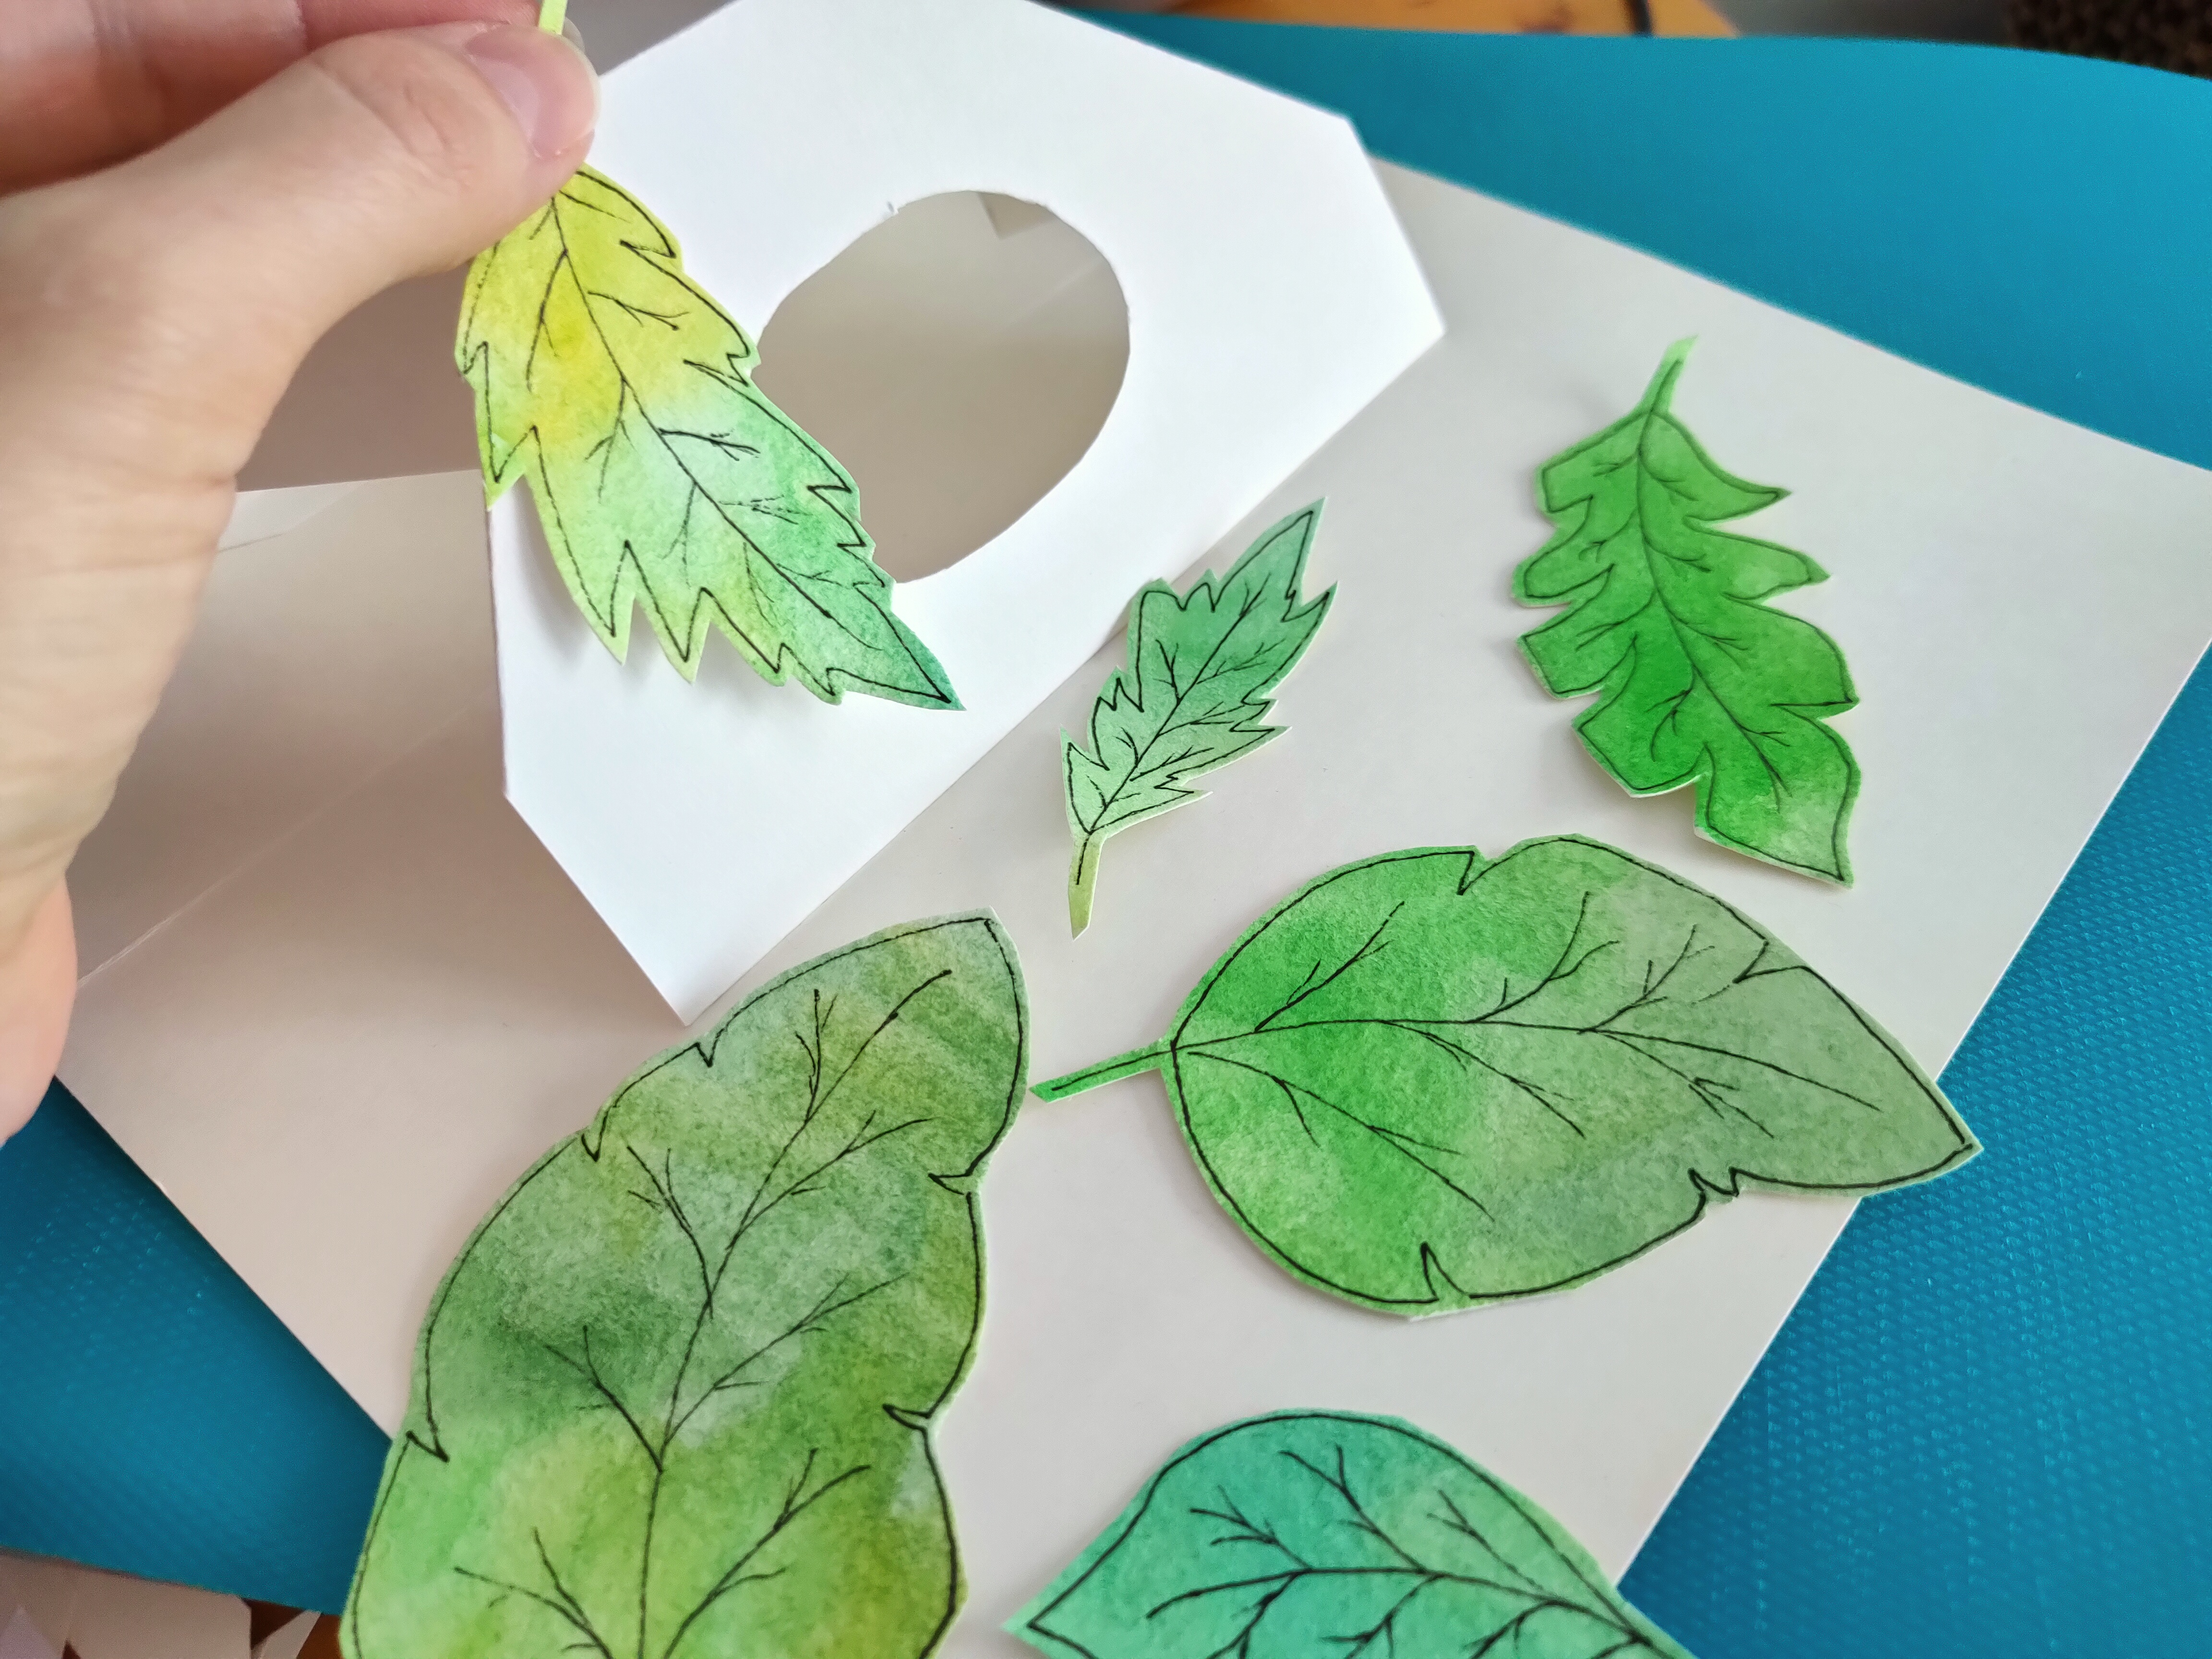 3d pop-up book - paper hut with leaves